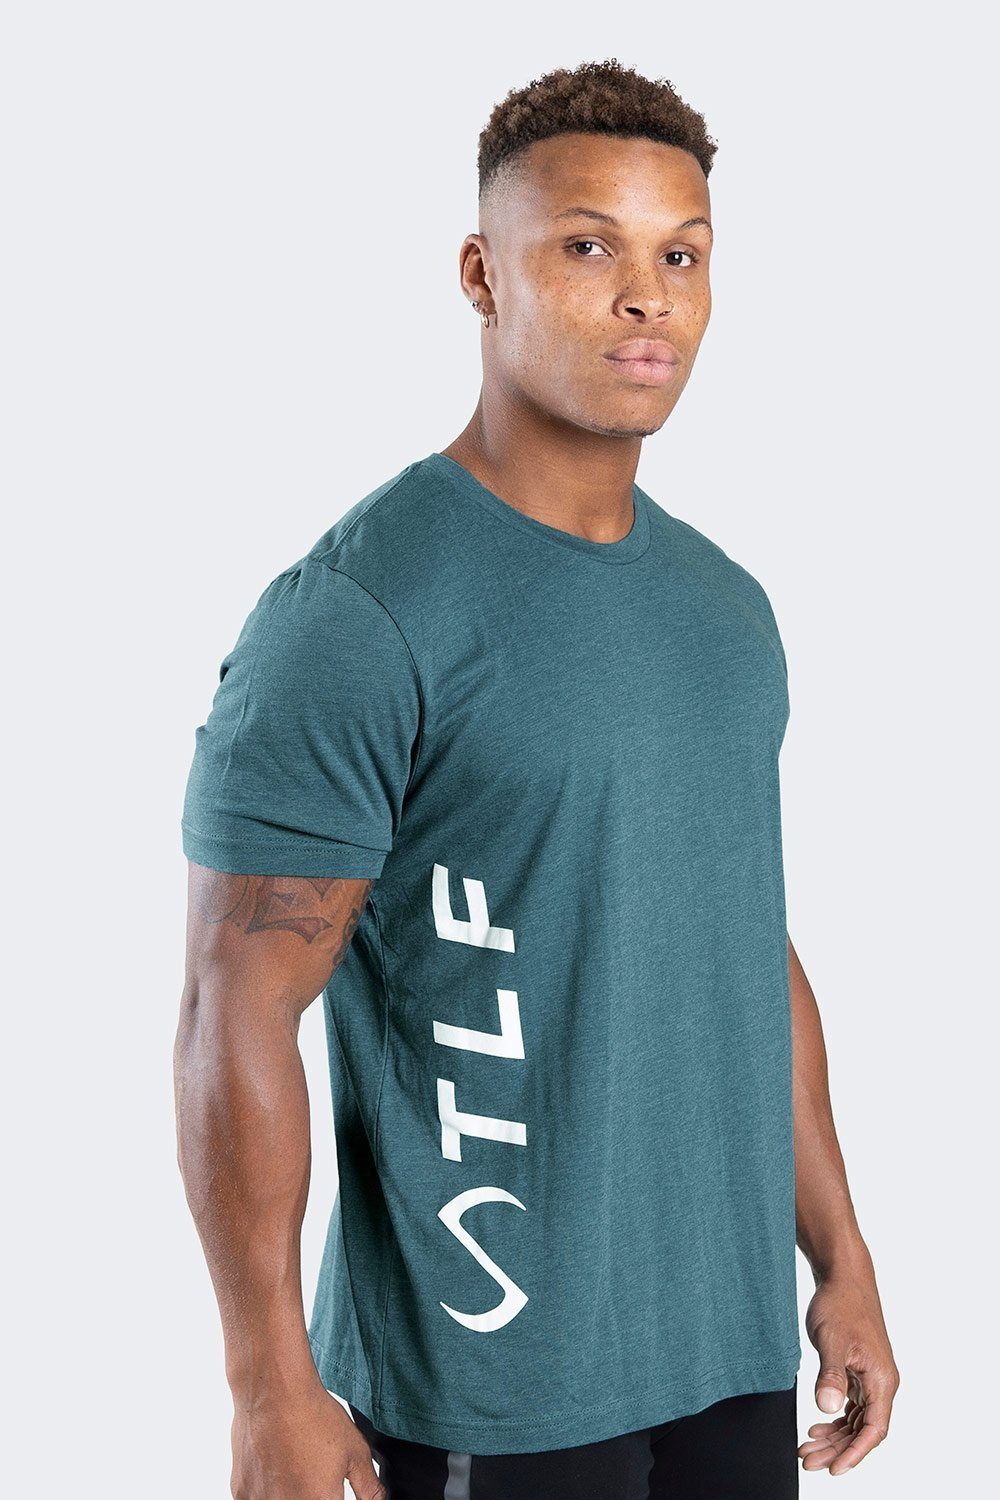 TLF Elevate T-Shirt Heather Deep Teal